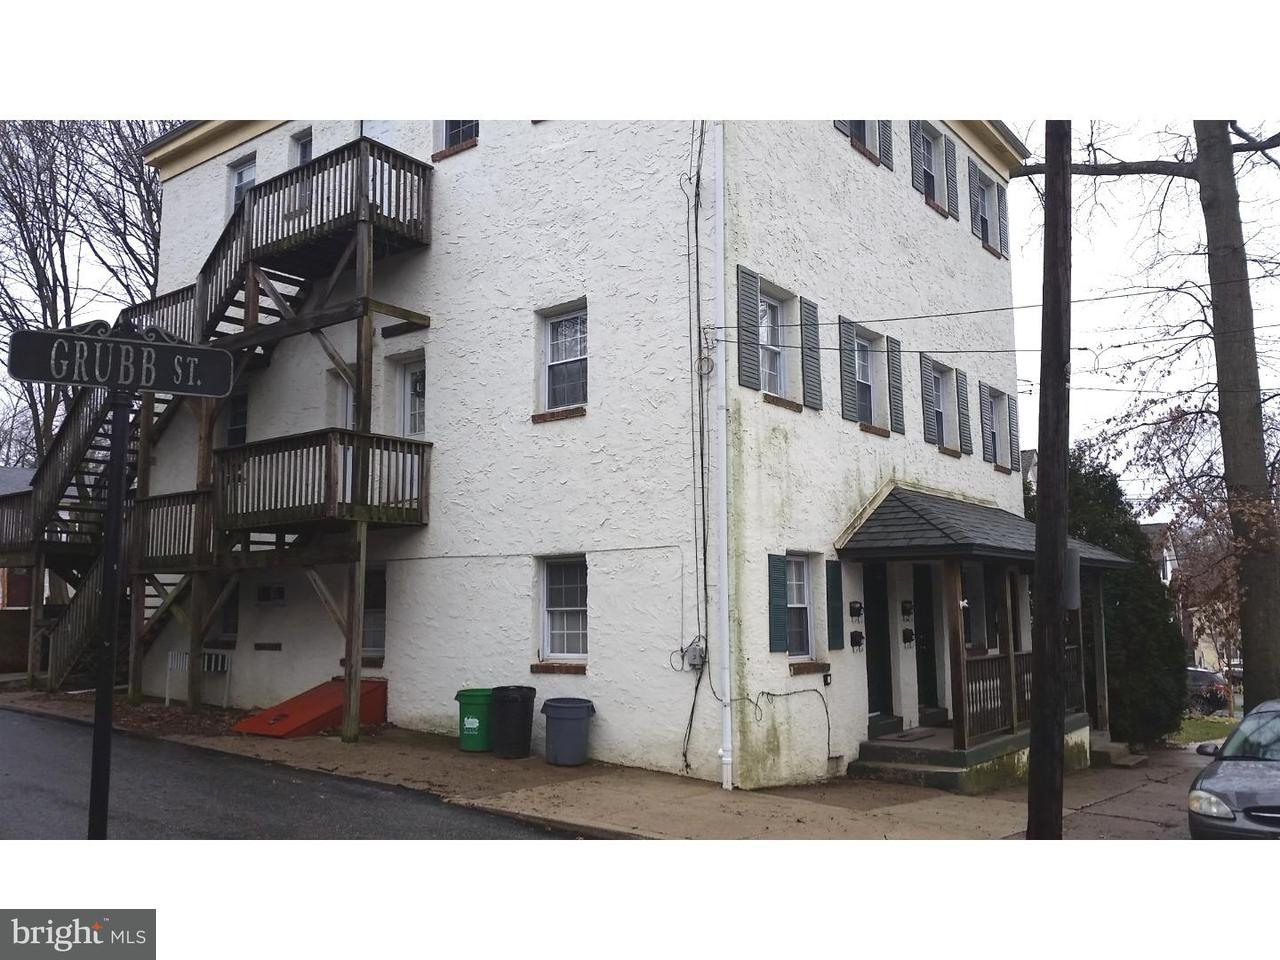 Single Family Home for Rent at 18-20 W 5TH ST #D Media, Pennsylvania 19063 United States